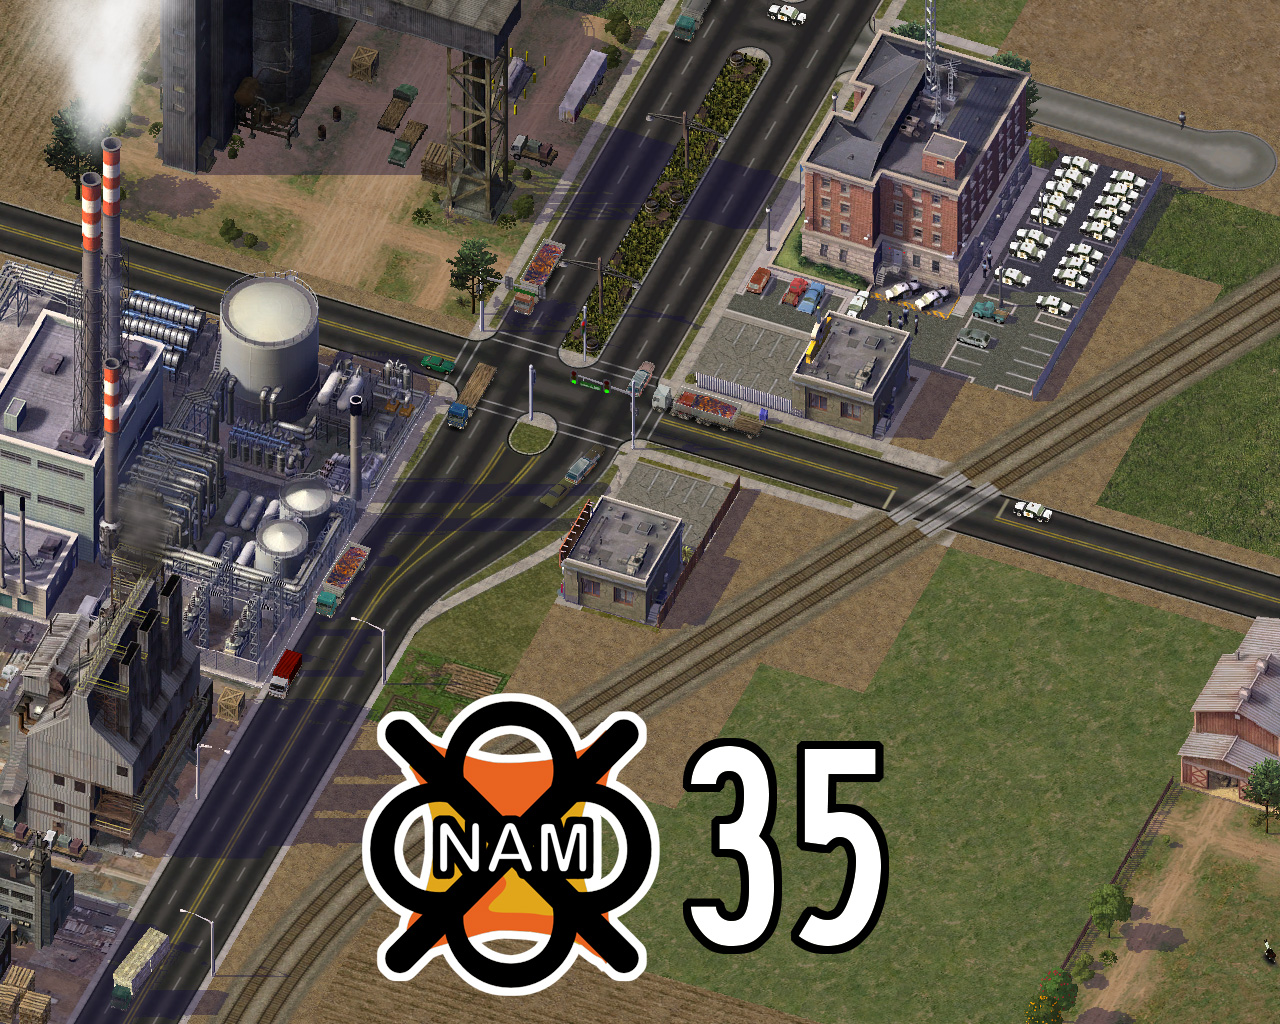 Network Addon Mod 35 Released for SimCity 4 news - Mod DB